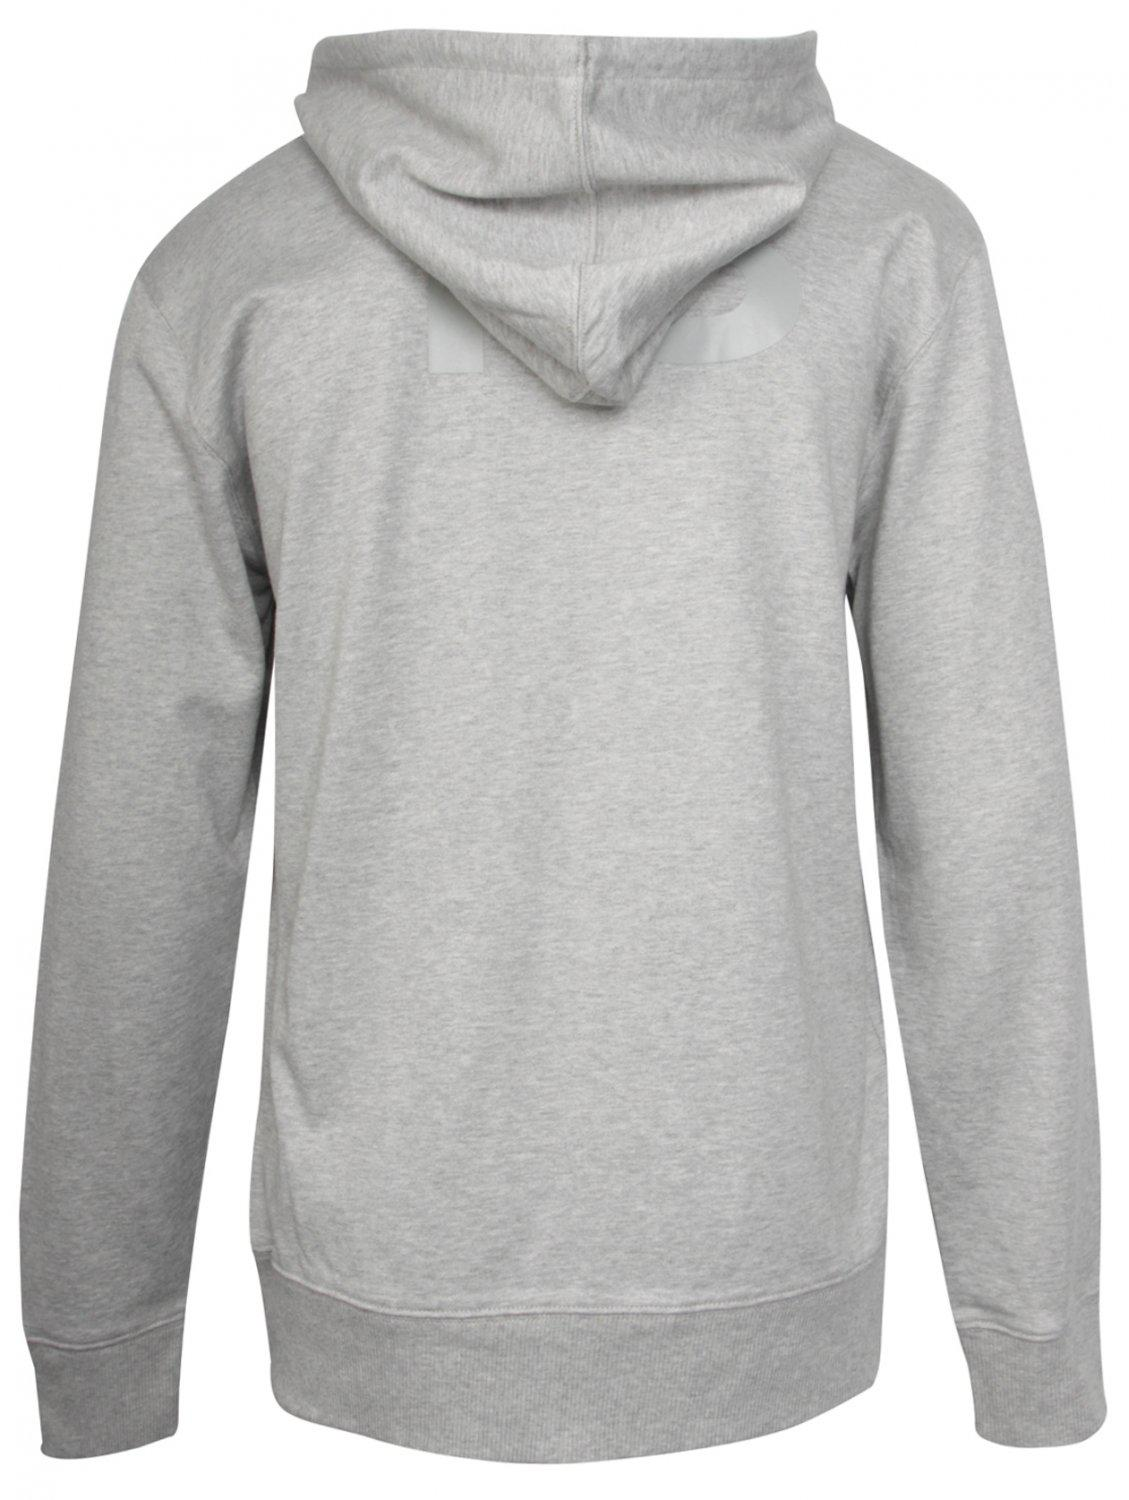 51bc5d270 Y-3 Classic Hooded Track Jacket Grey in Gray for Men - Lyst